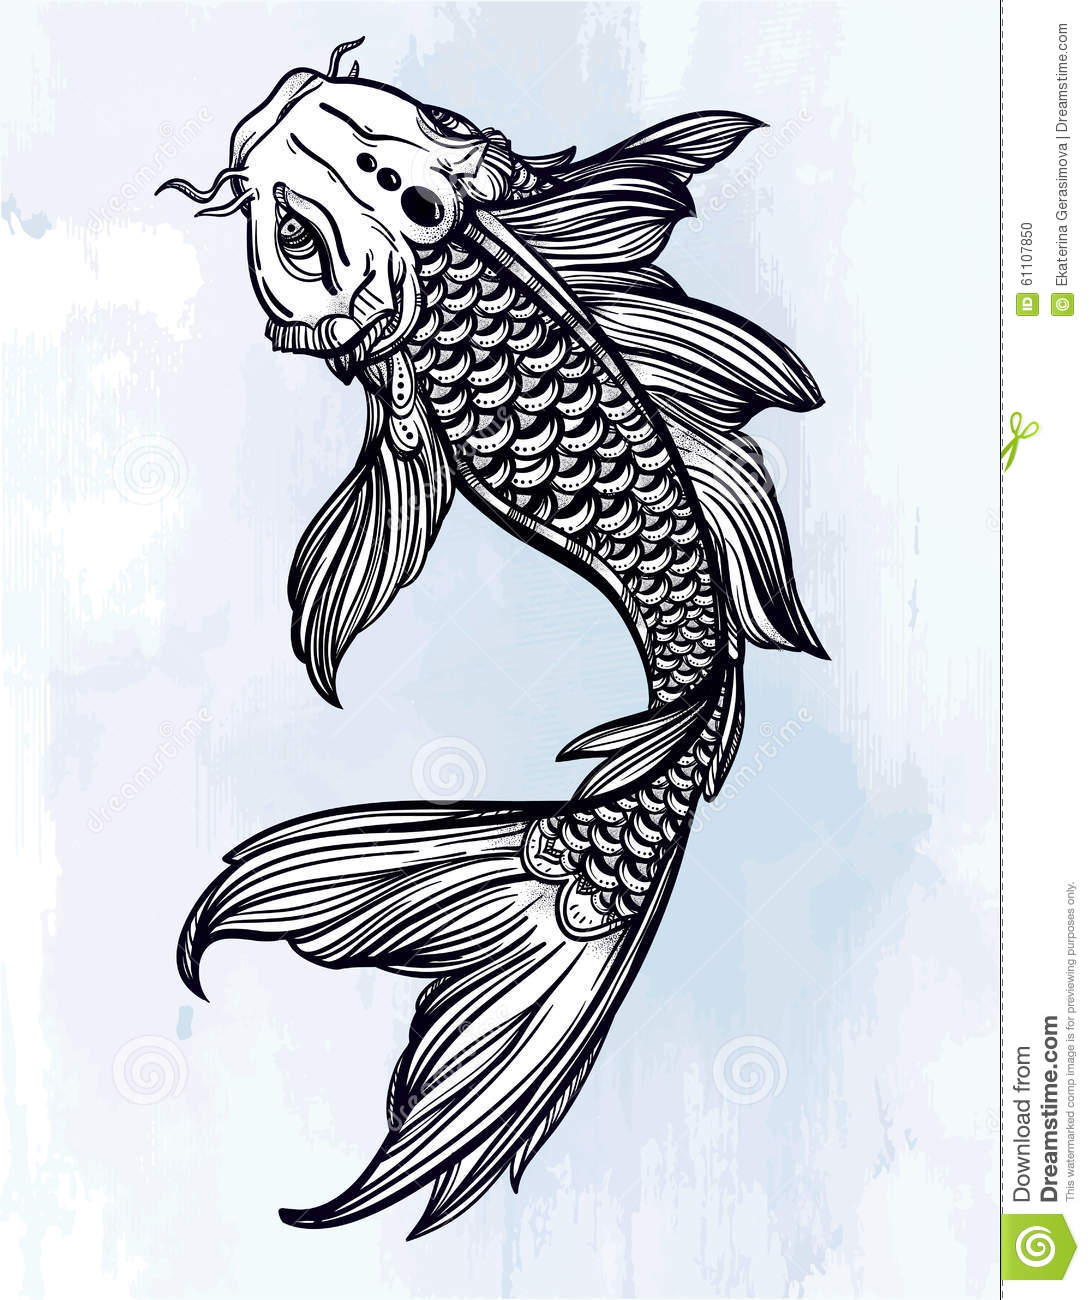 Elegant koi carp fish illustration stock vector image for Koi fish vector